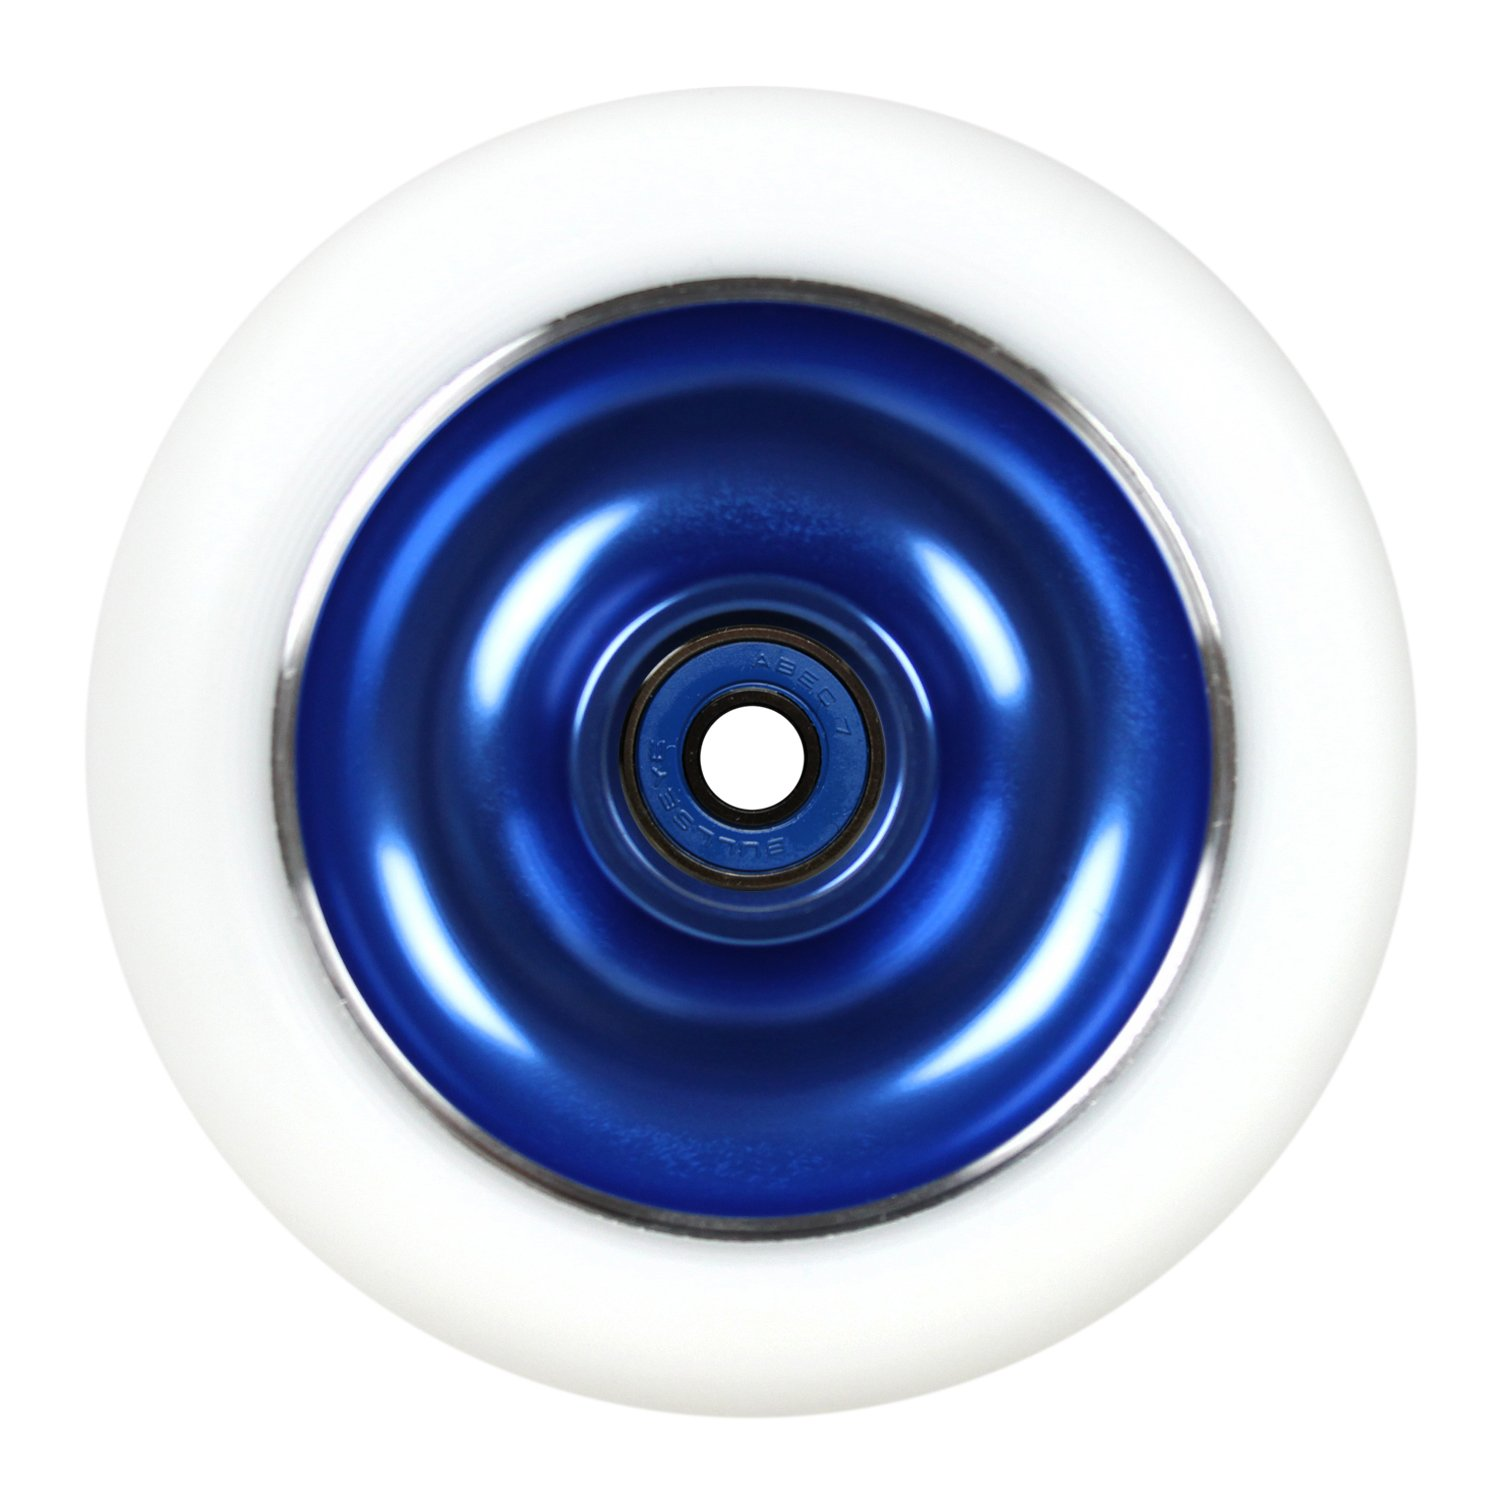 Kick Push Aluminum hub Scooter Wheel with Bearings, Blue/White, 100mm